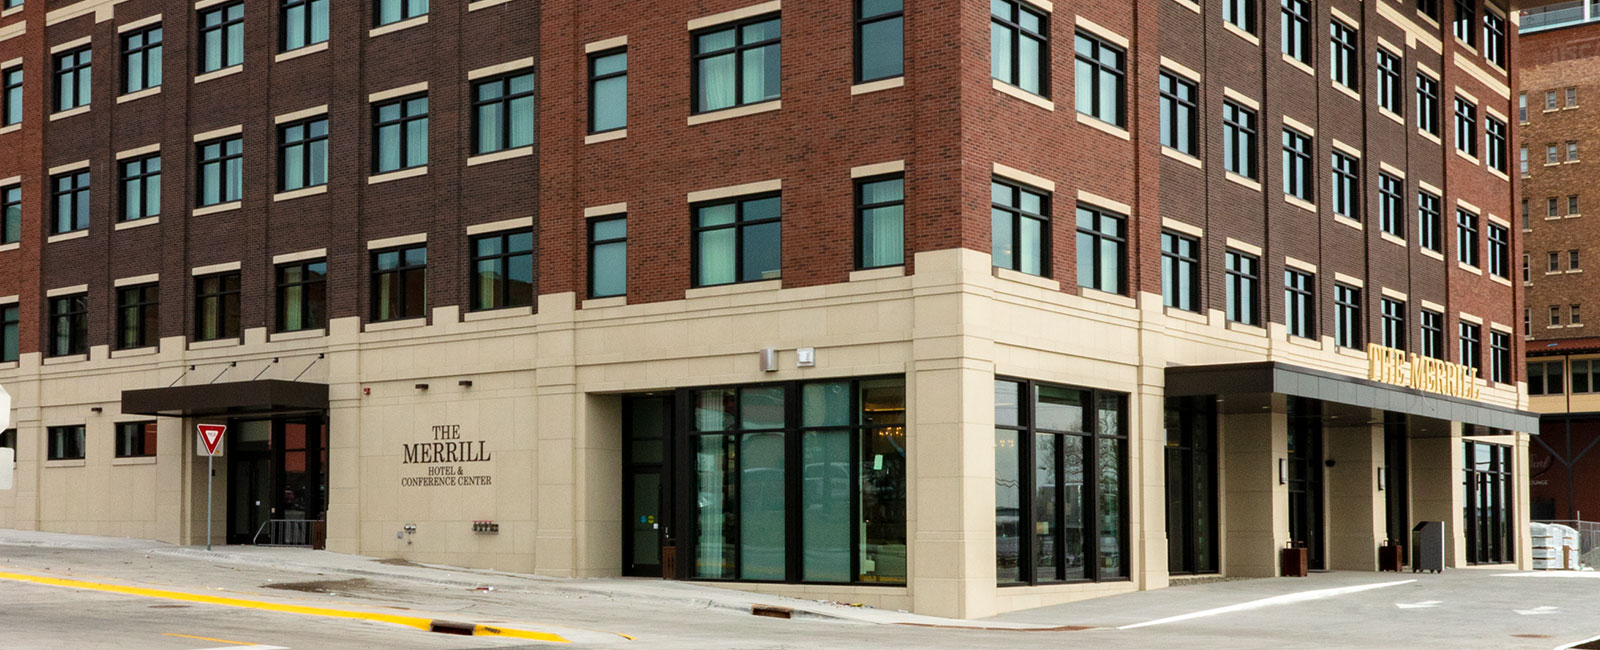 The Merrill Hotel & Conference Center – Muscatine, IA